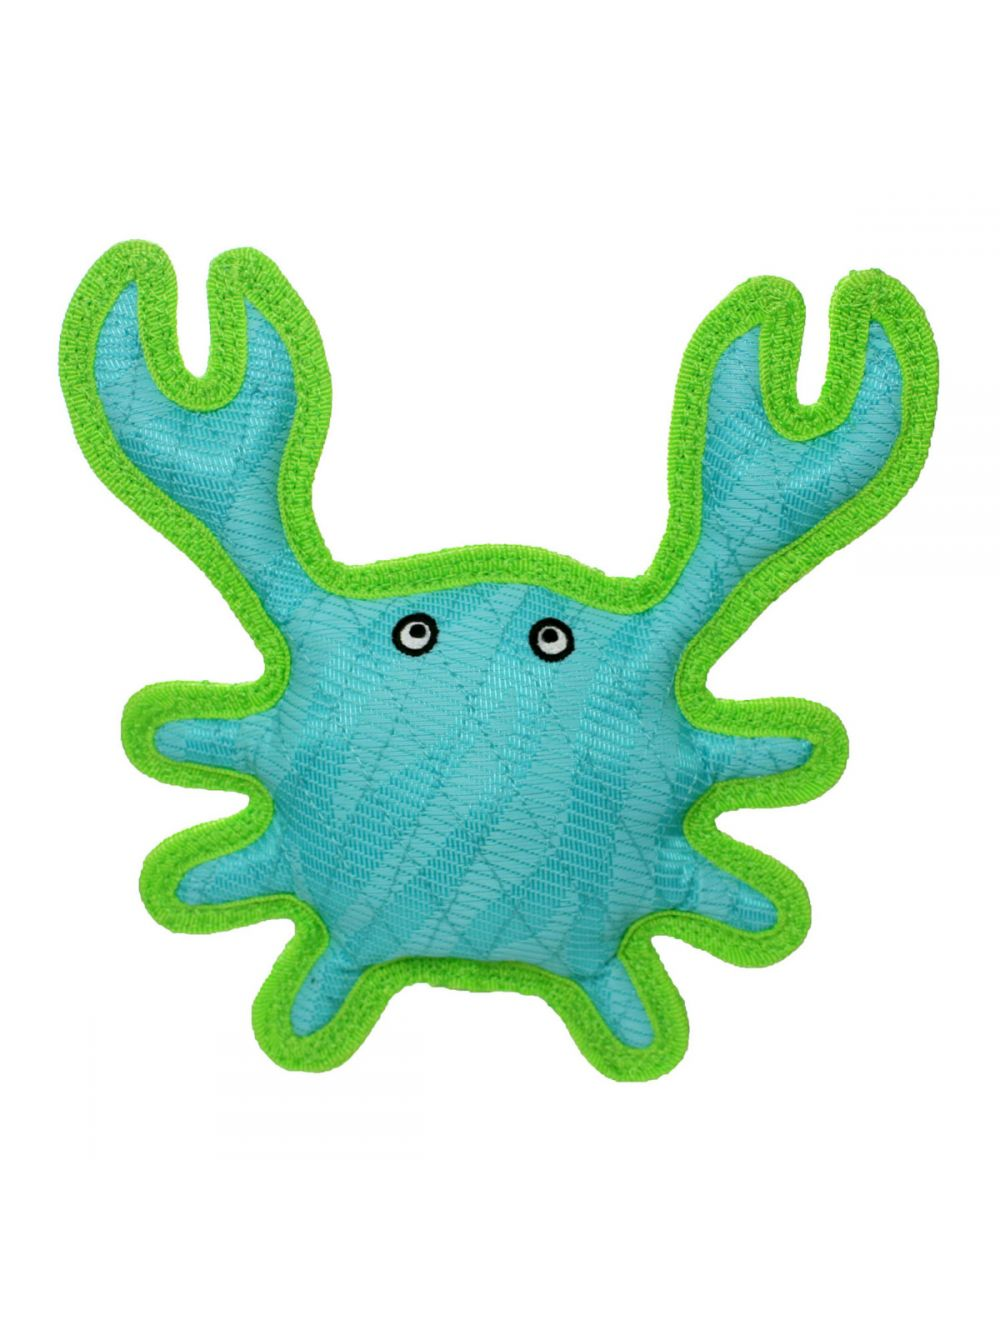 Duraforce Tuffy's Pet Toys King Crab